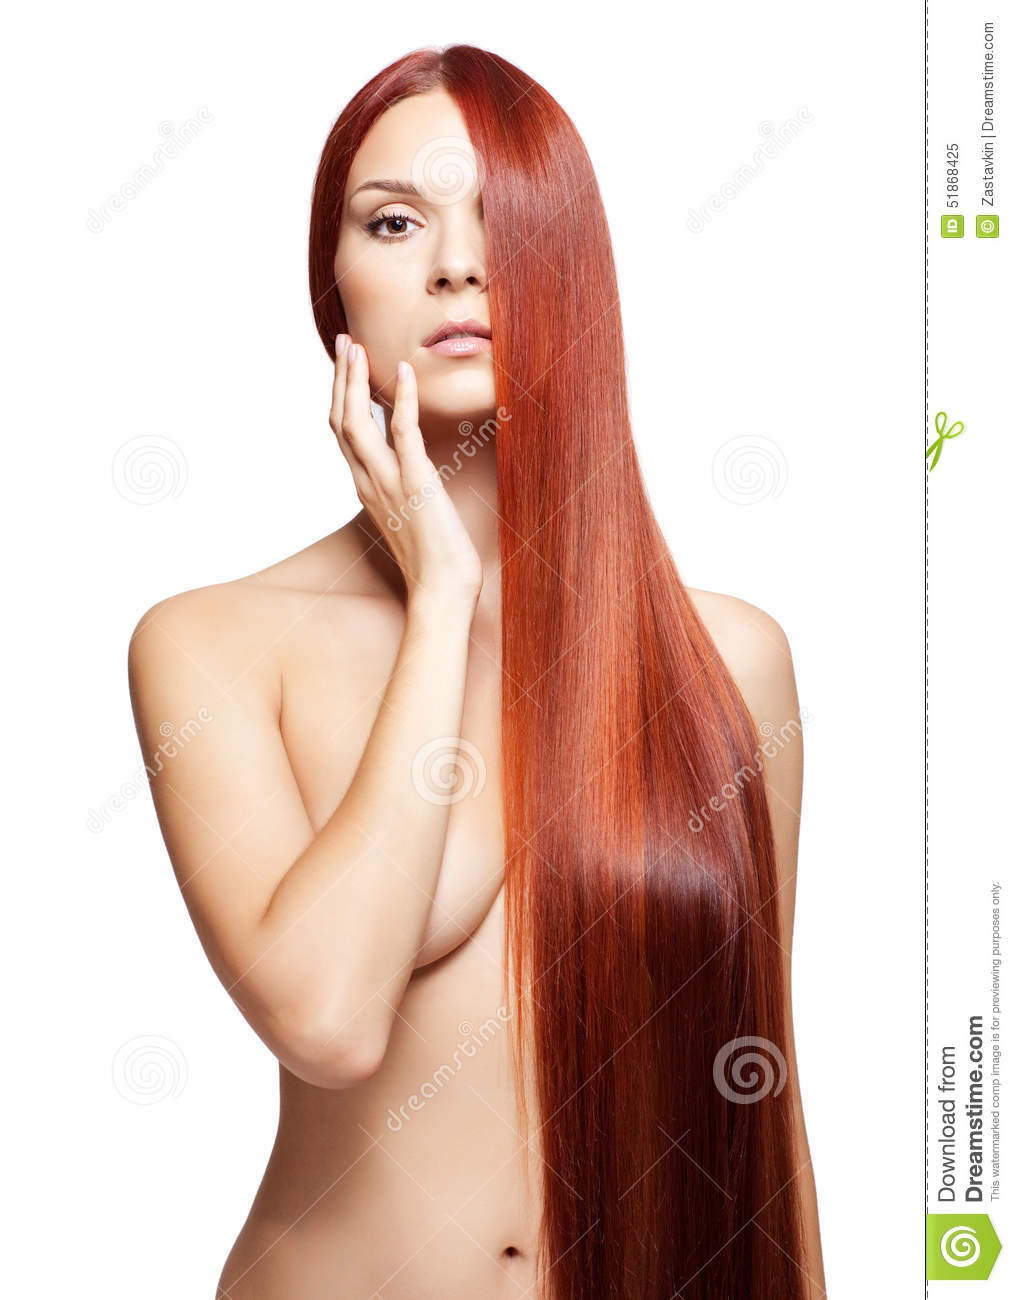 Haired nude red woman